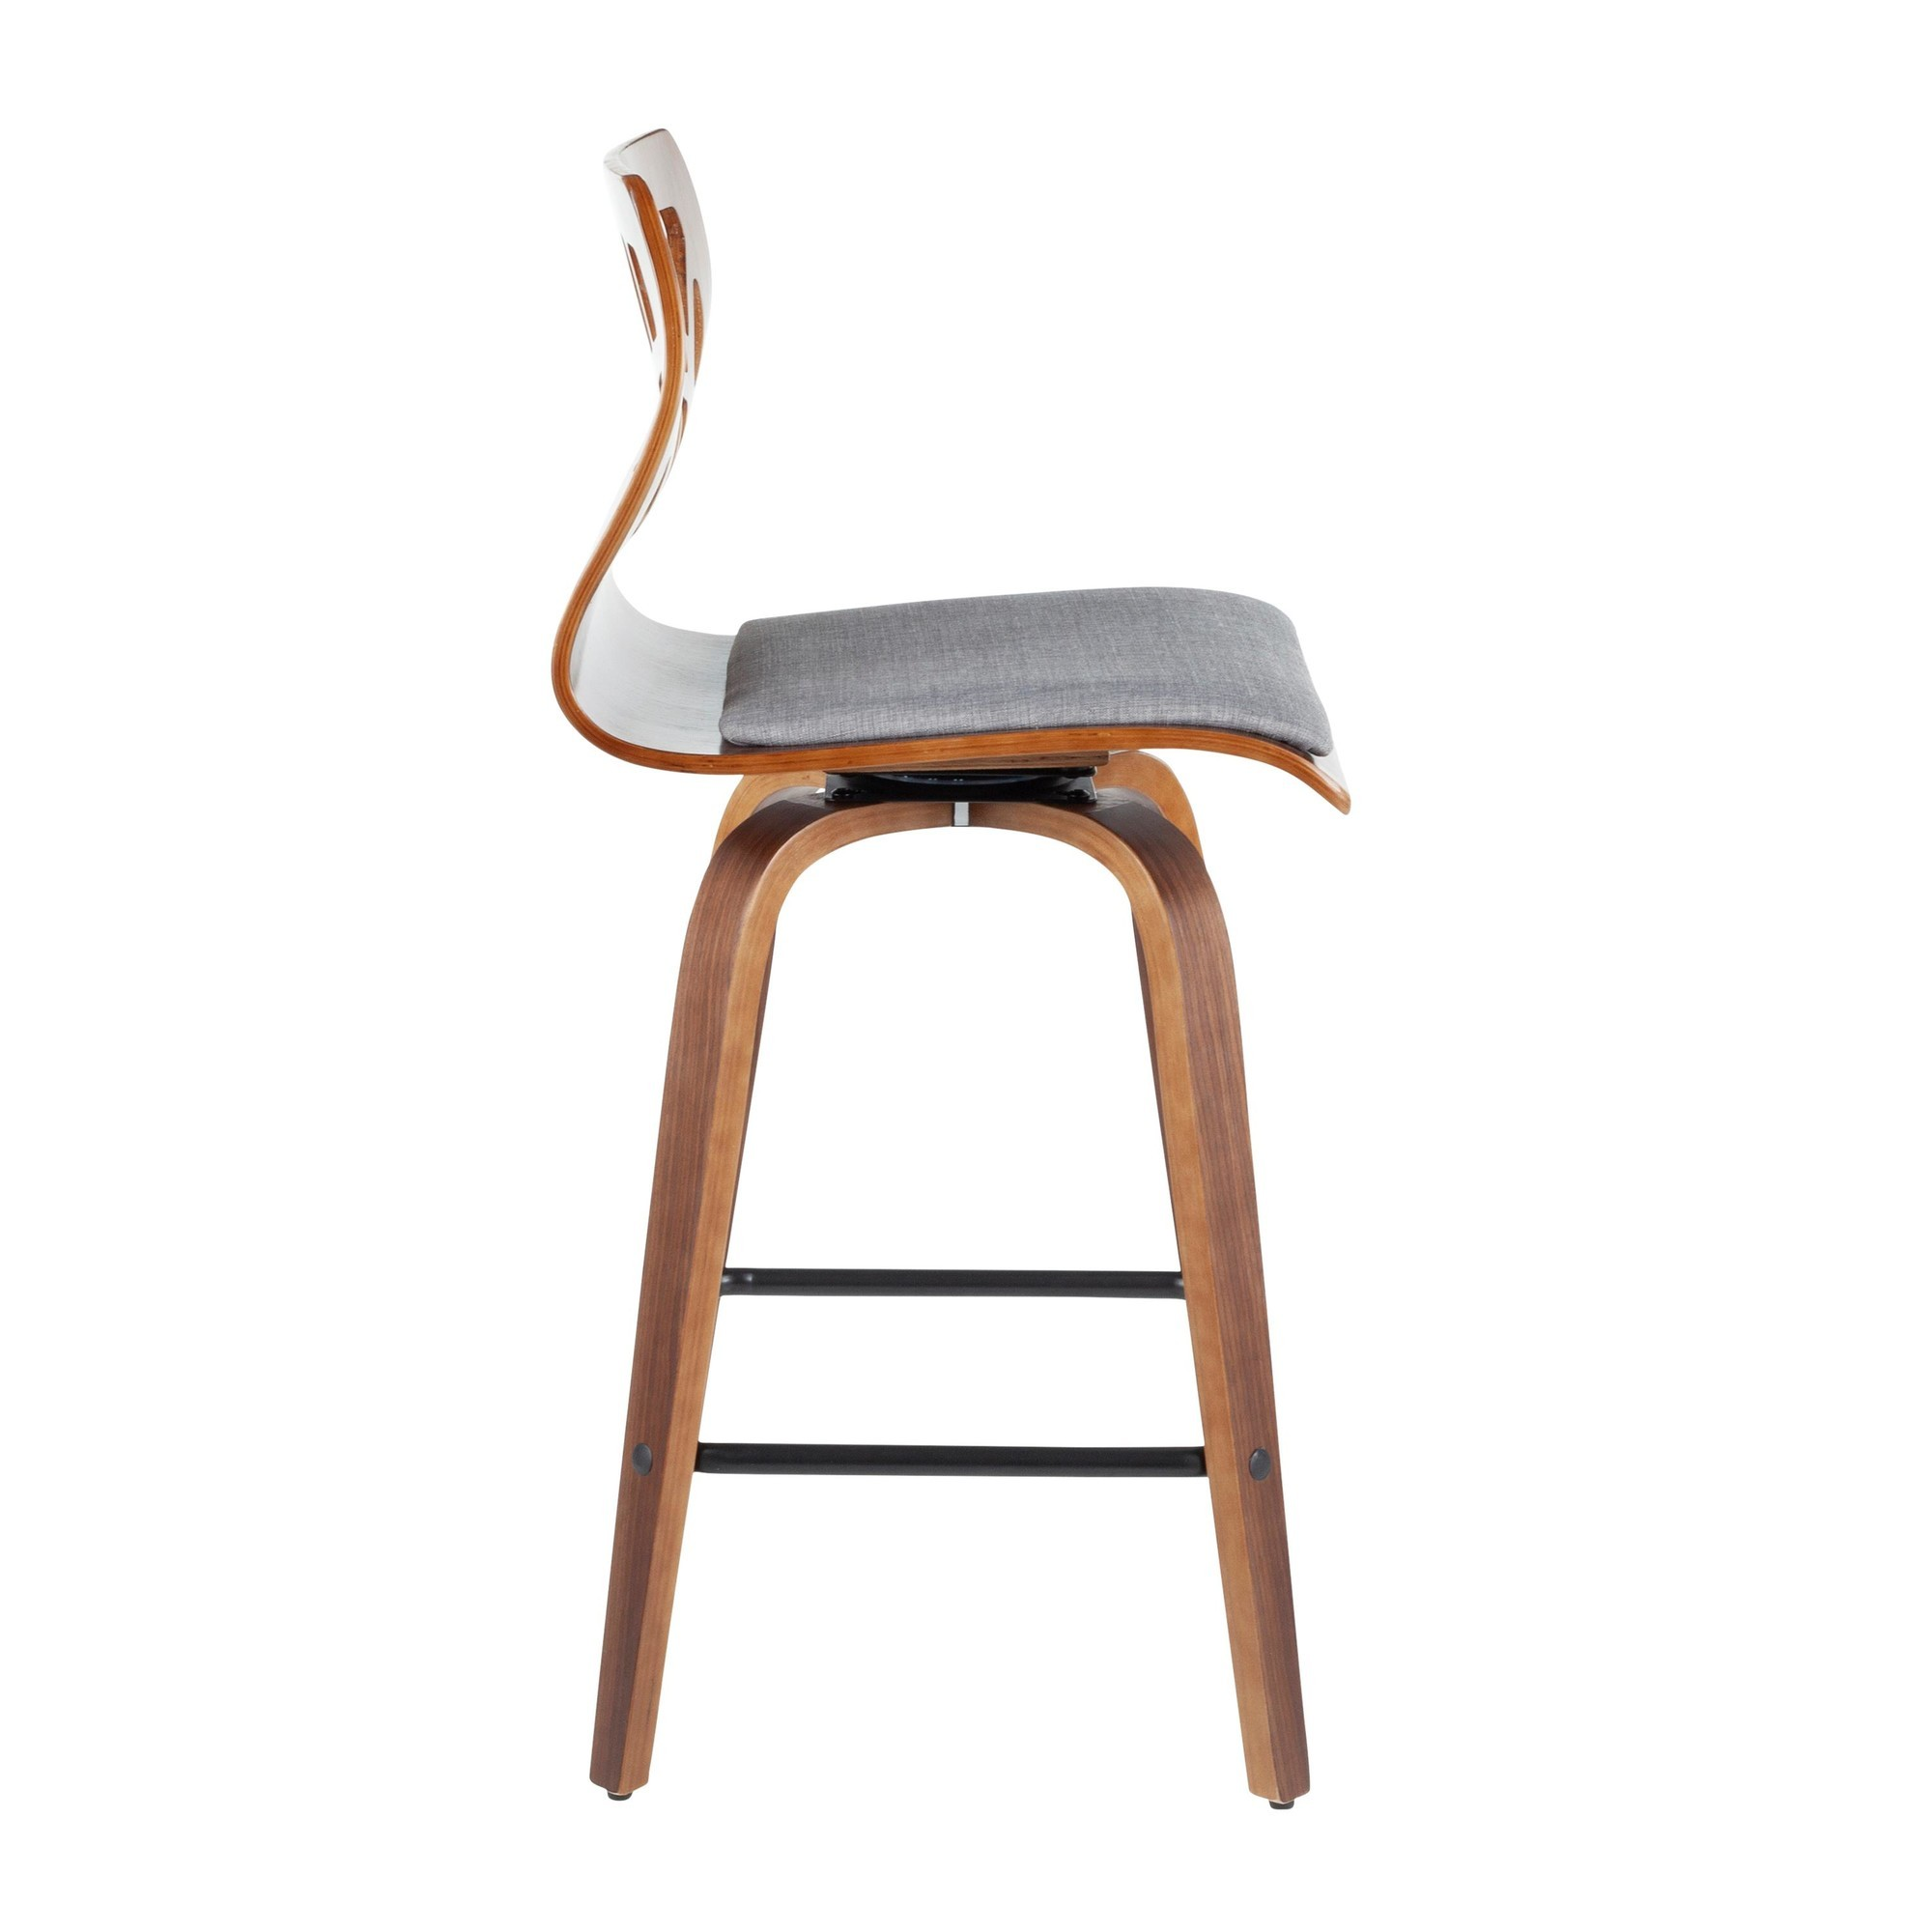 Awe Inspiring Folia Modern Counter Stool In Walnut Wood And Light Grey Fabric Set Of 2 Pdpeps Interior Chair Design Pdpepsorg